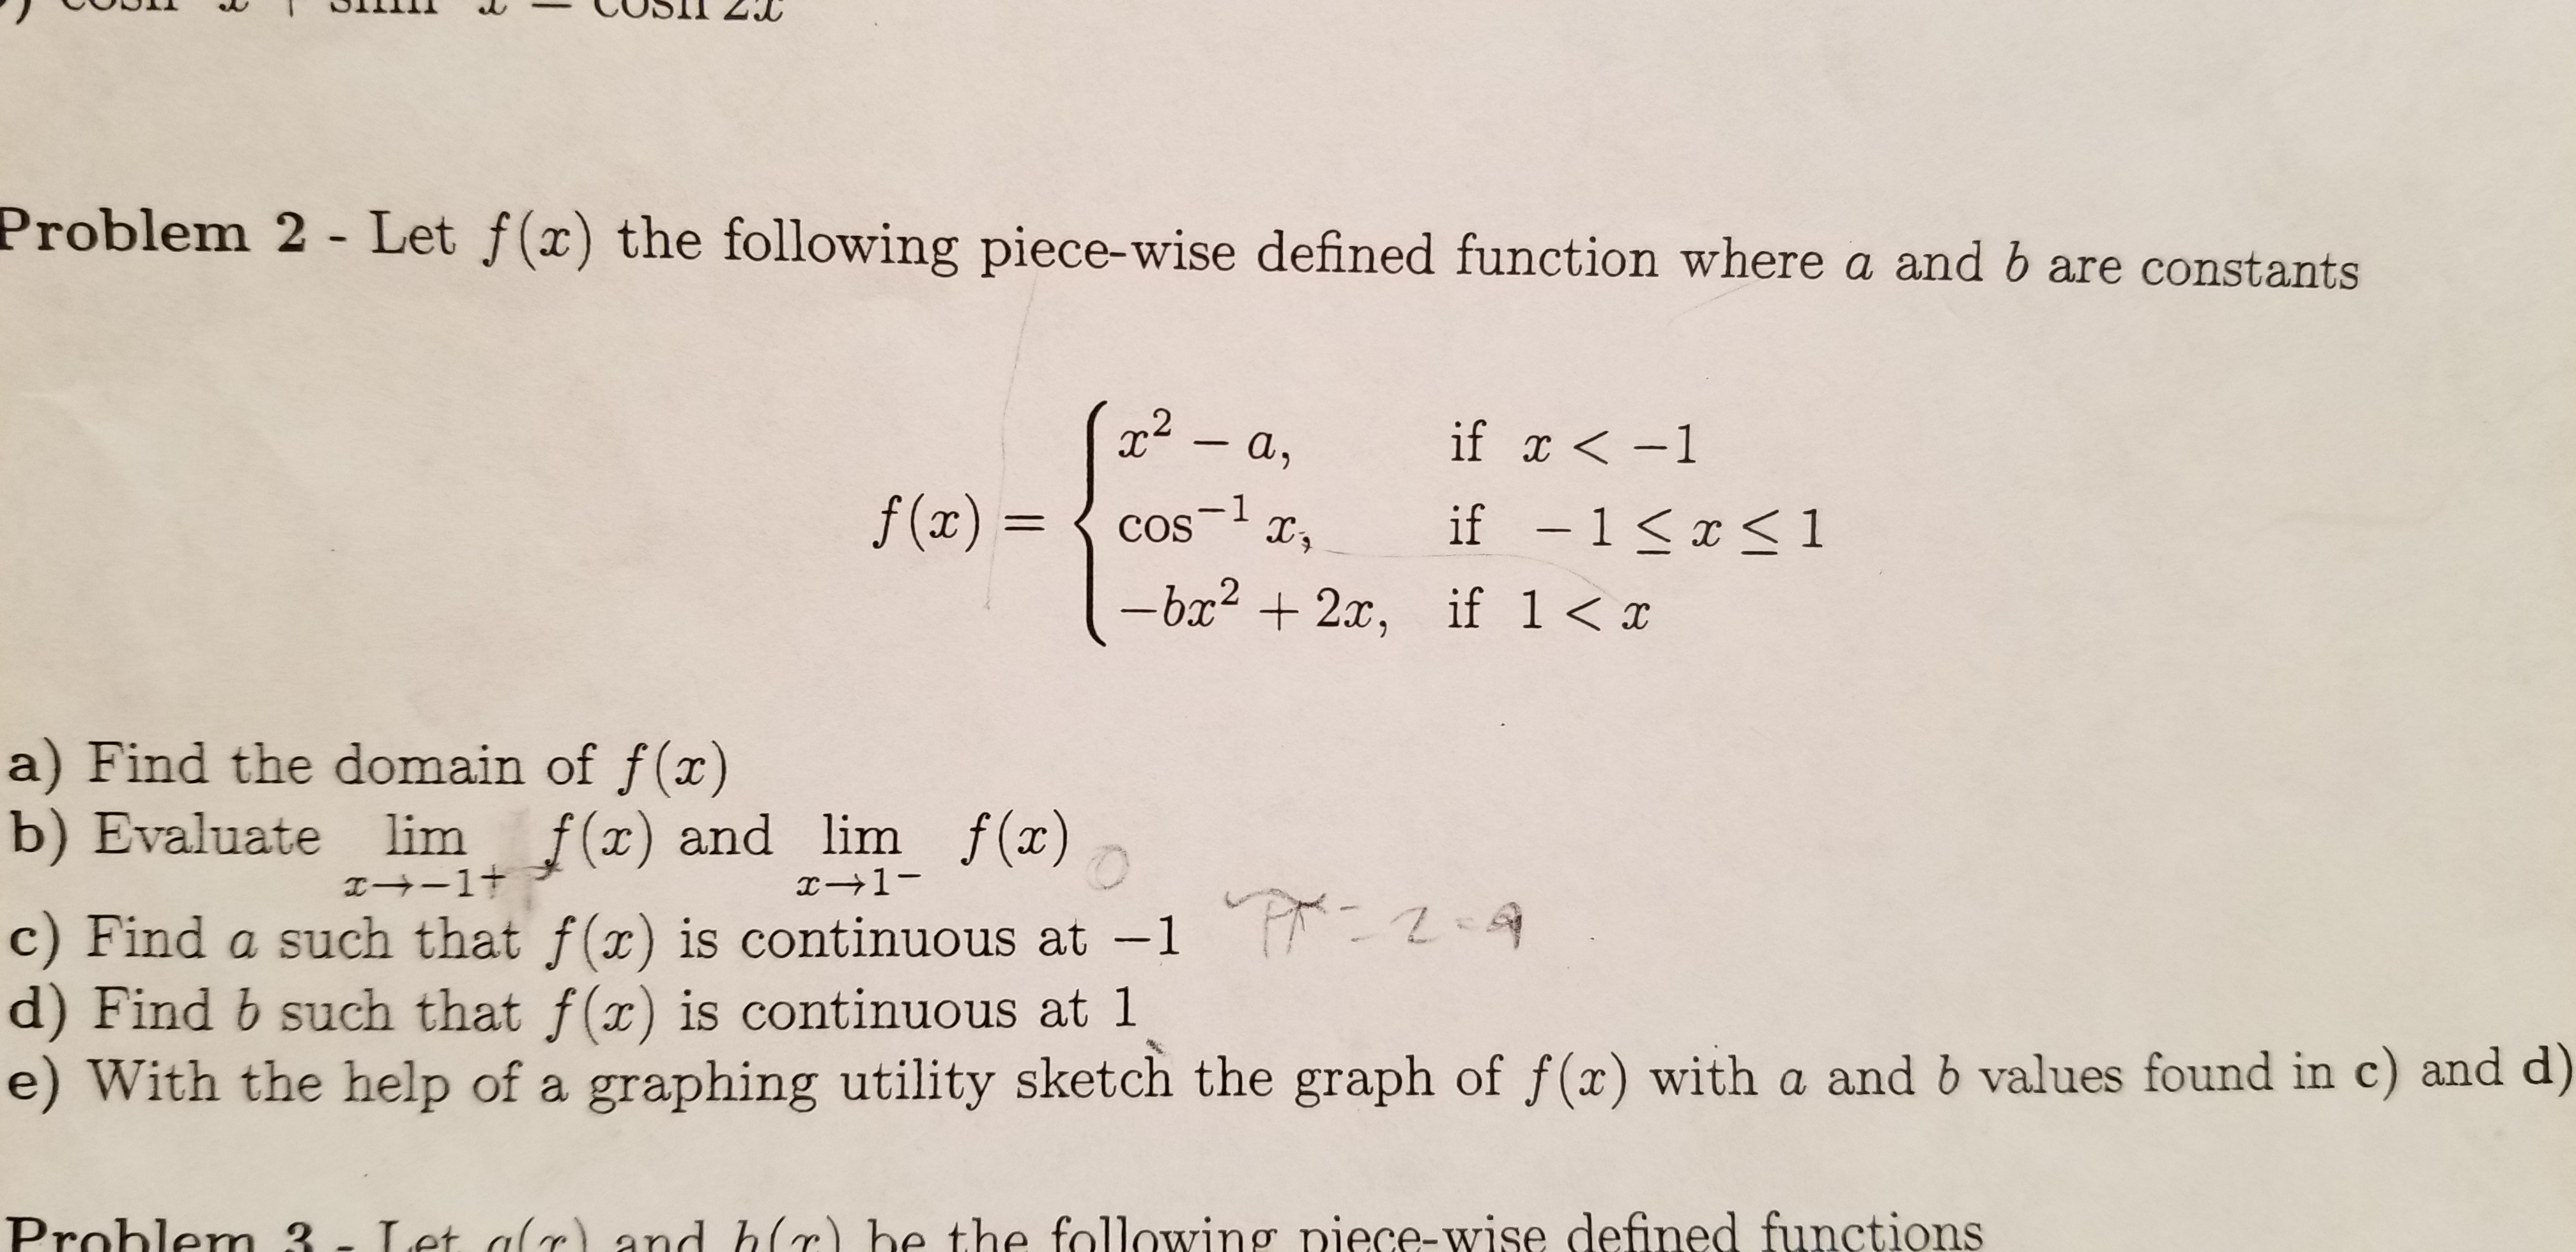 Problem 2 - Let f(x) the following piece-wise defined function where a and b are constants if x-1 -a, f (x)= 1 COS if -1 1 -bx2x, if 1 a) Find the domain of f(x) b) Evaluate lim I+1t f() and lim f (x) 1- c) Find a such that f(x) is continuous at -1 - d) Find b such that f(x) is continuous at 1 e) With the help of a graphing utility sketch the graph of f(x) with a and b values found in c) and d) Let alr and hc) be the following piece-wise defined functions Prohlem 3-